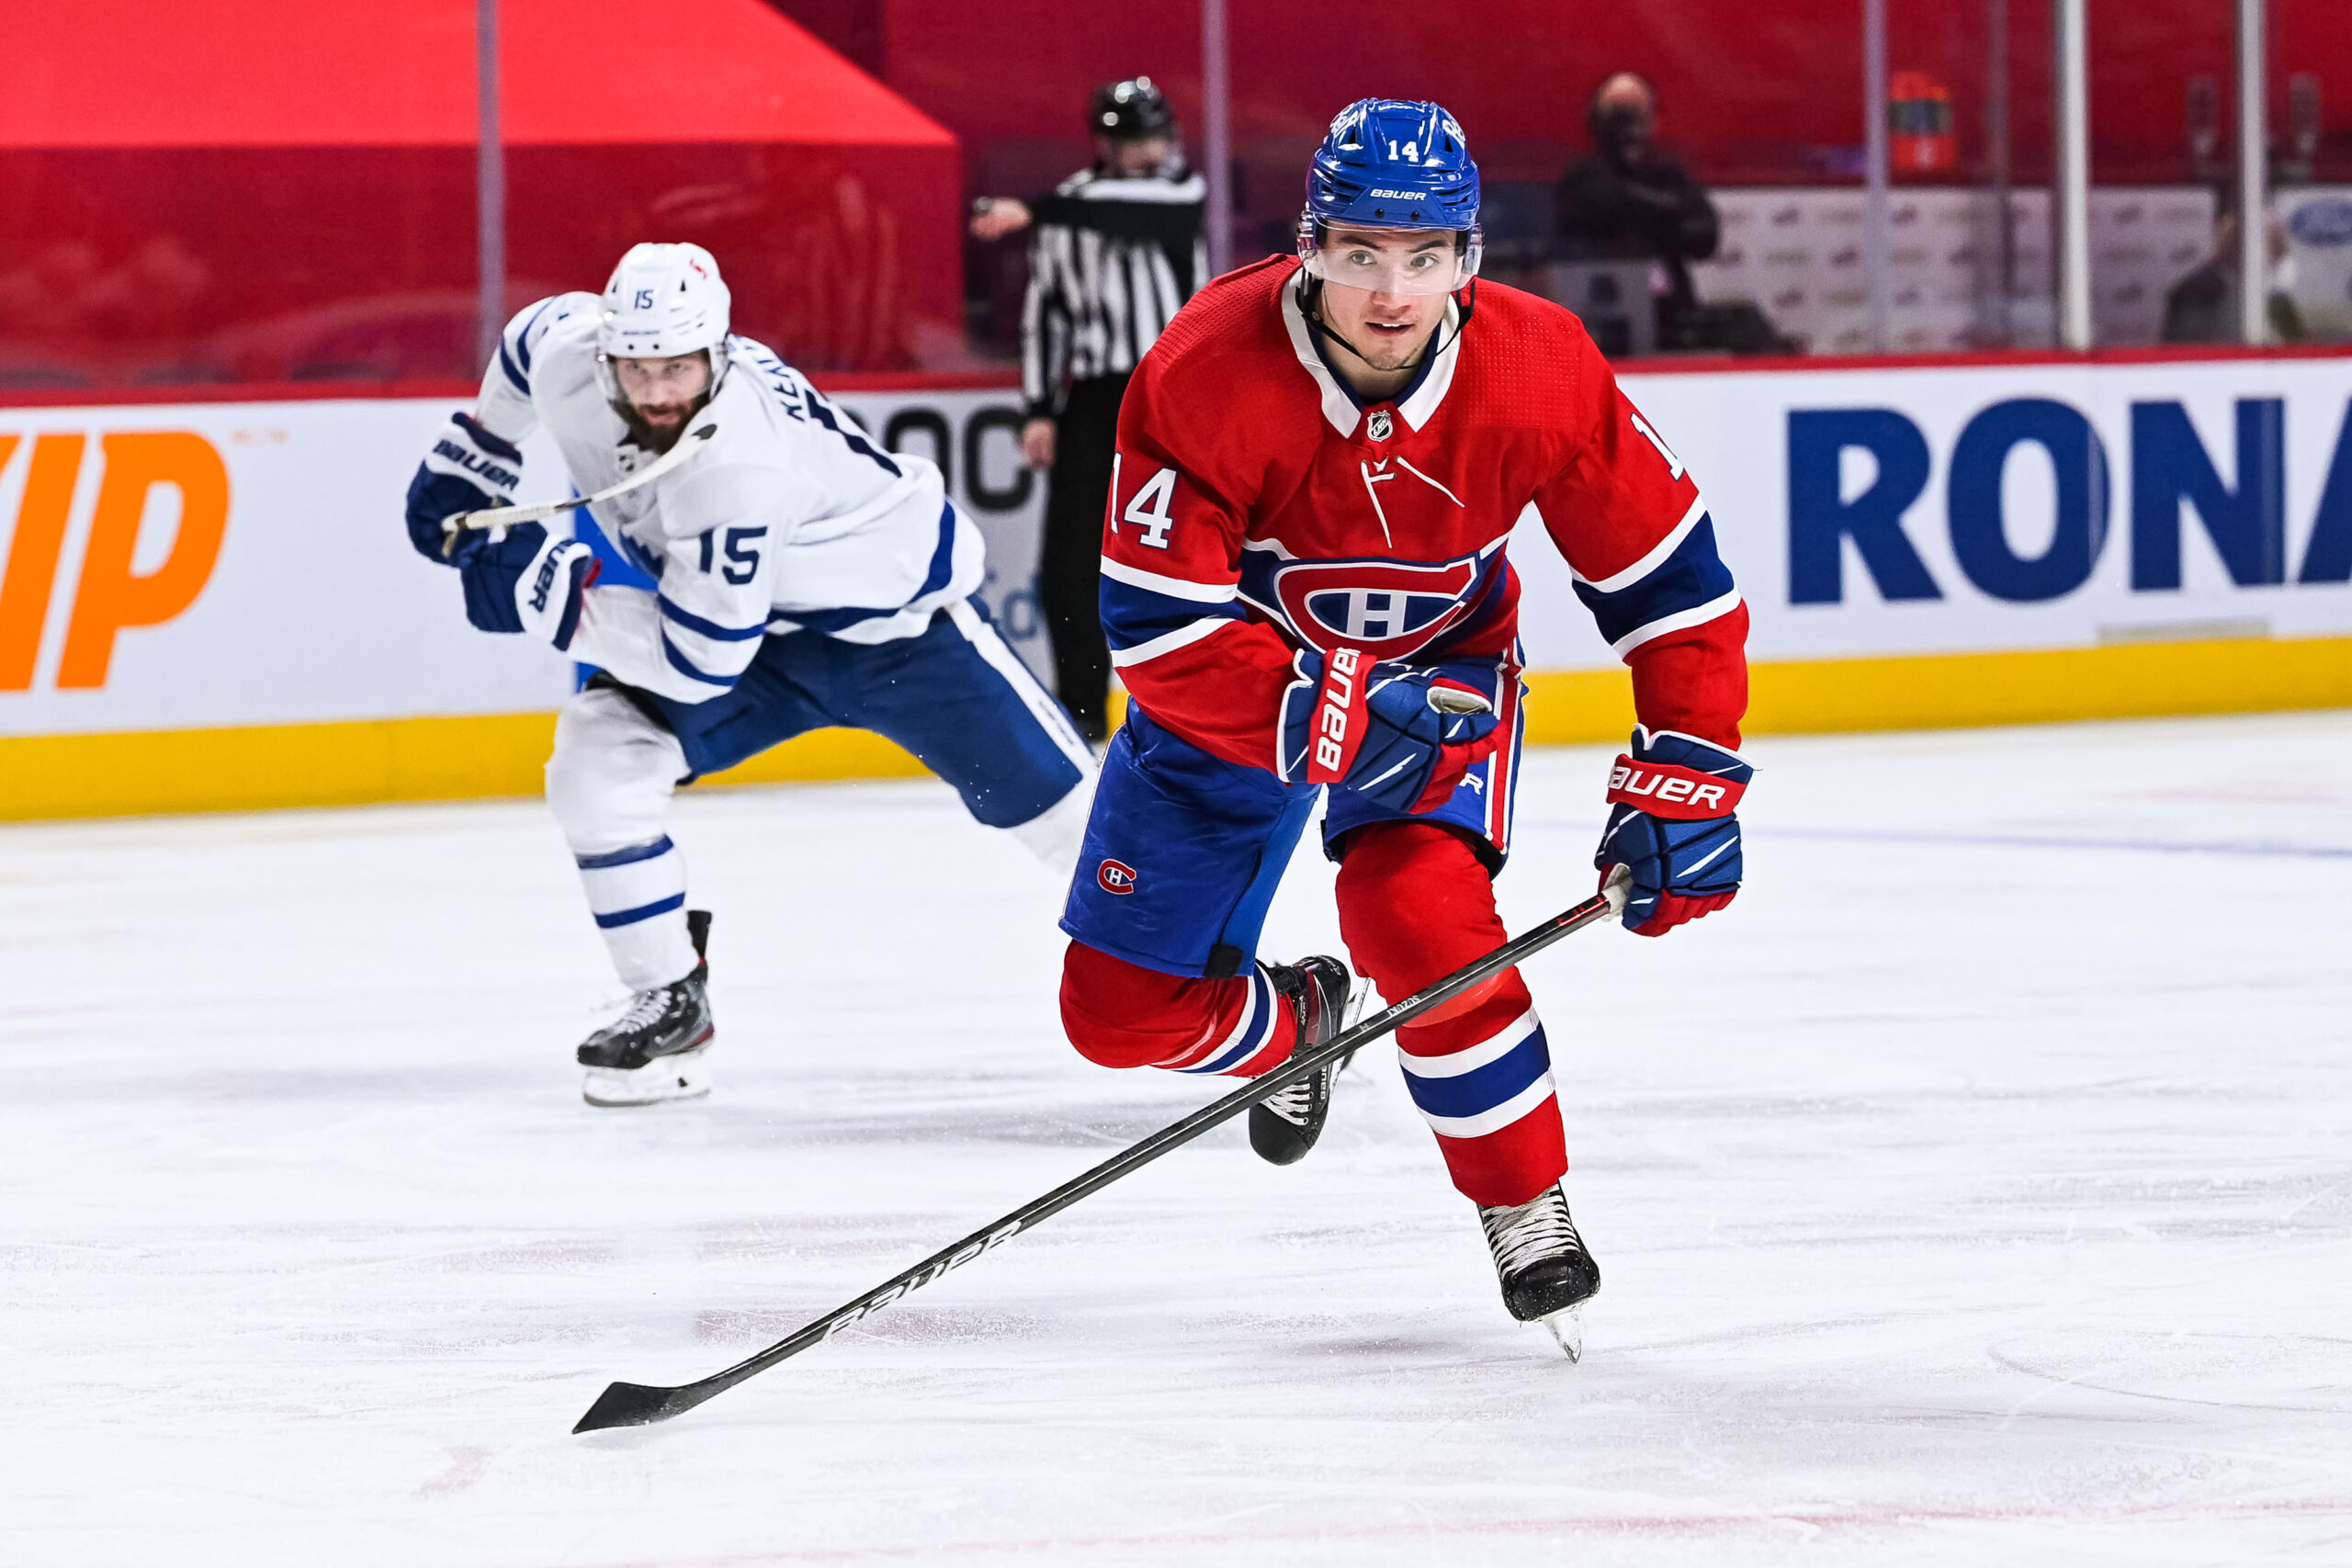 Canadiens Must Address Lack of Experience at Center